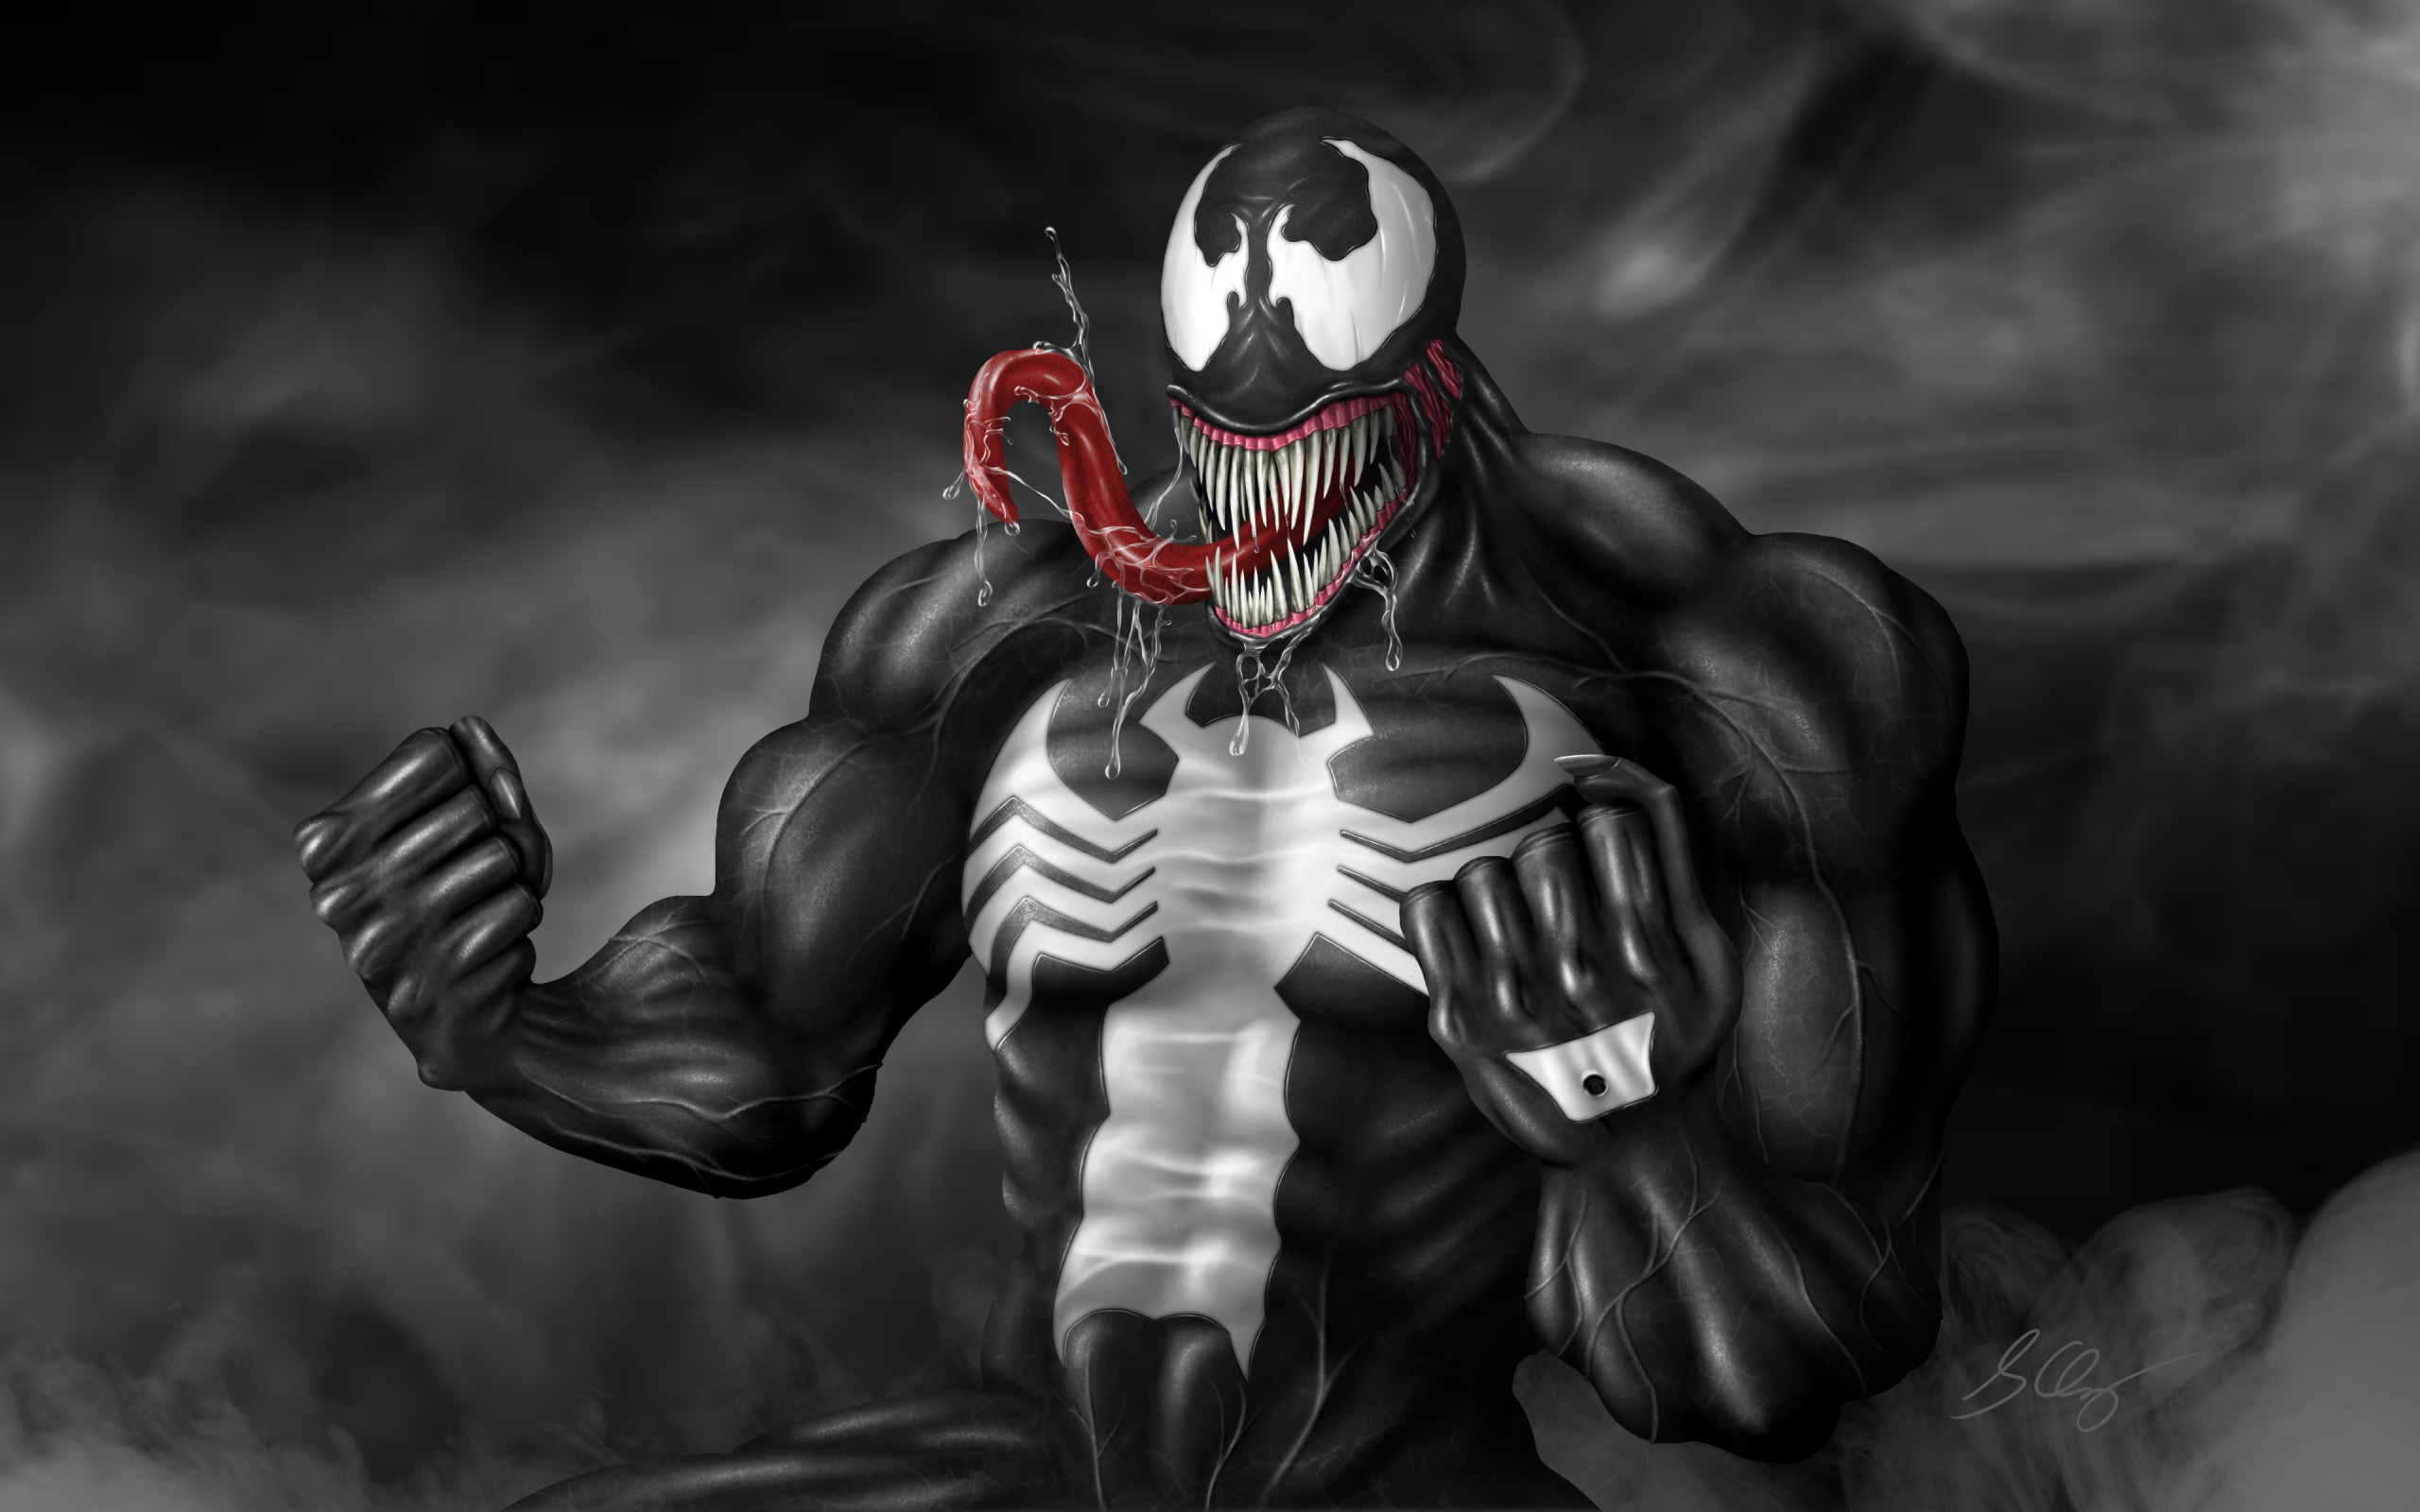 Venom fan art | 2560x1600 wallpaper